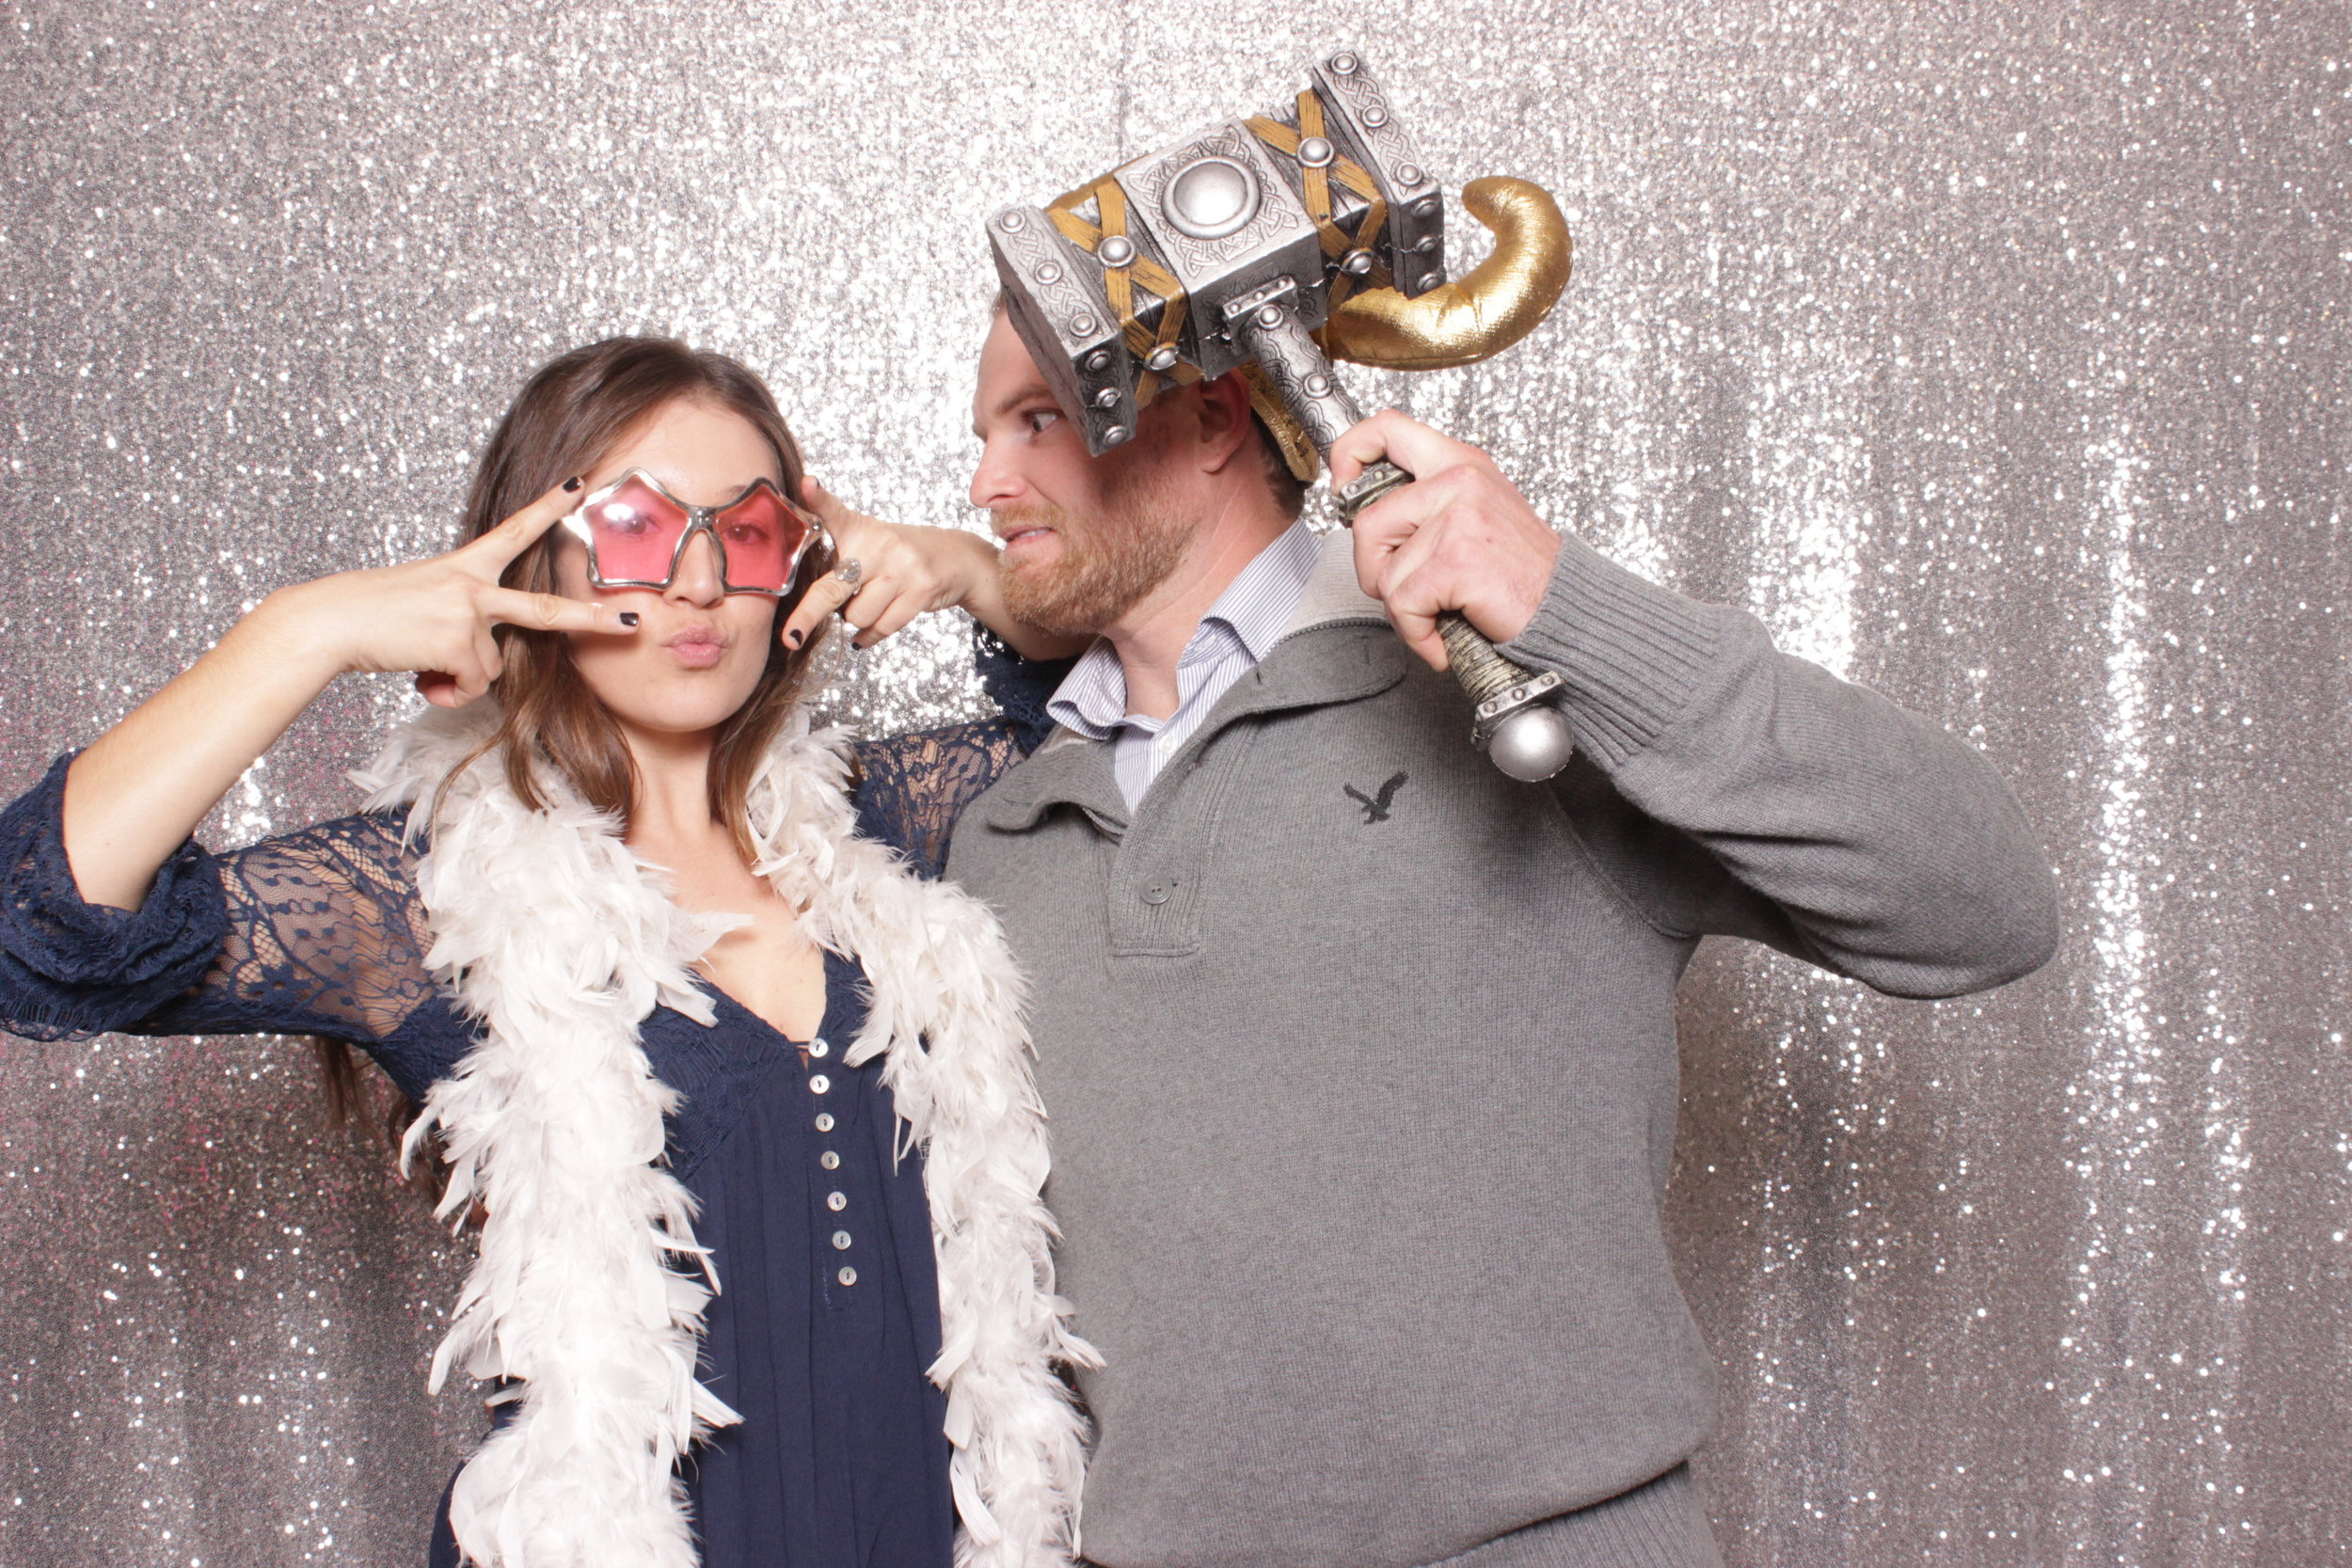 Chico-photo-booth-rental-fun-all-ages